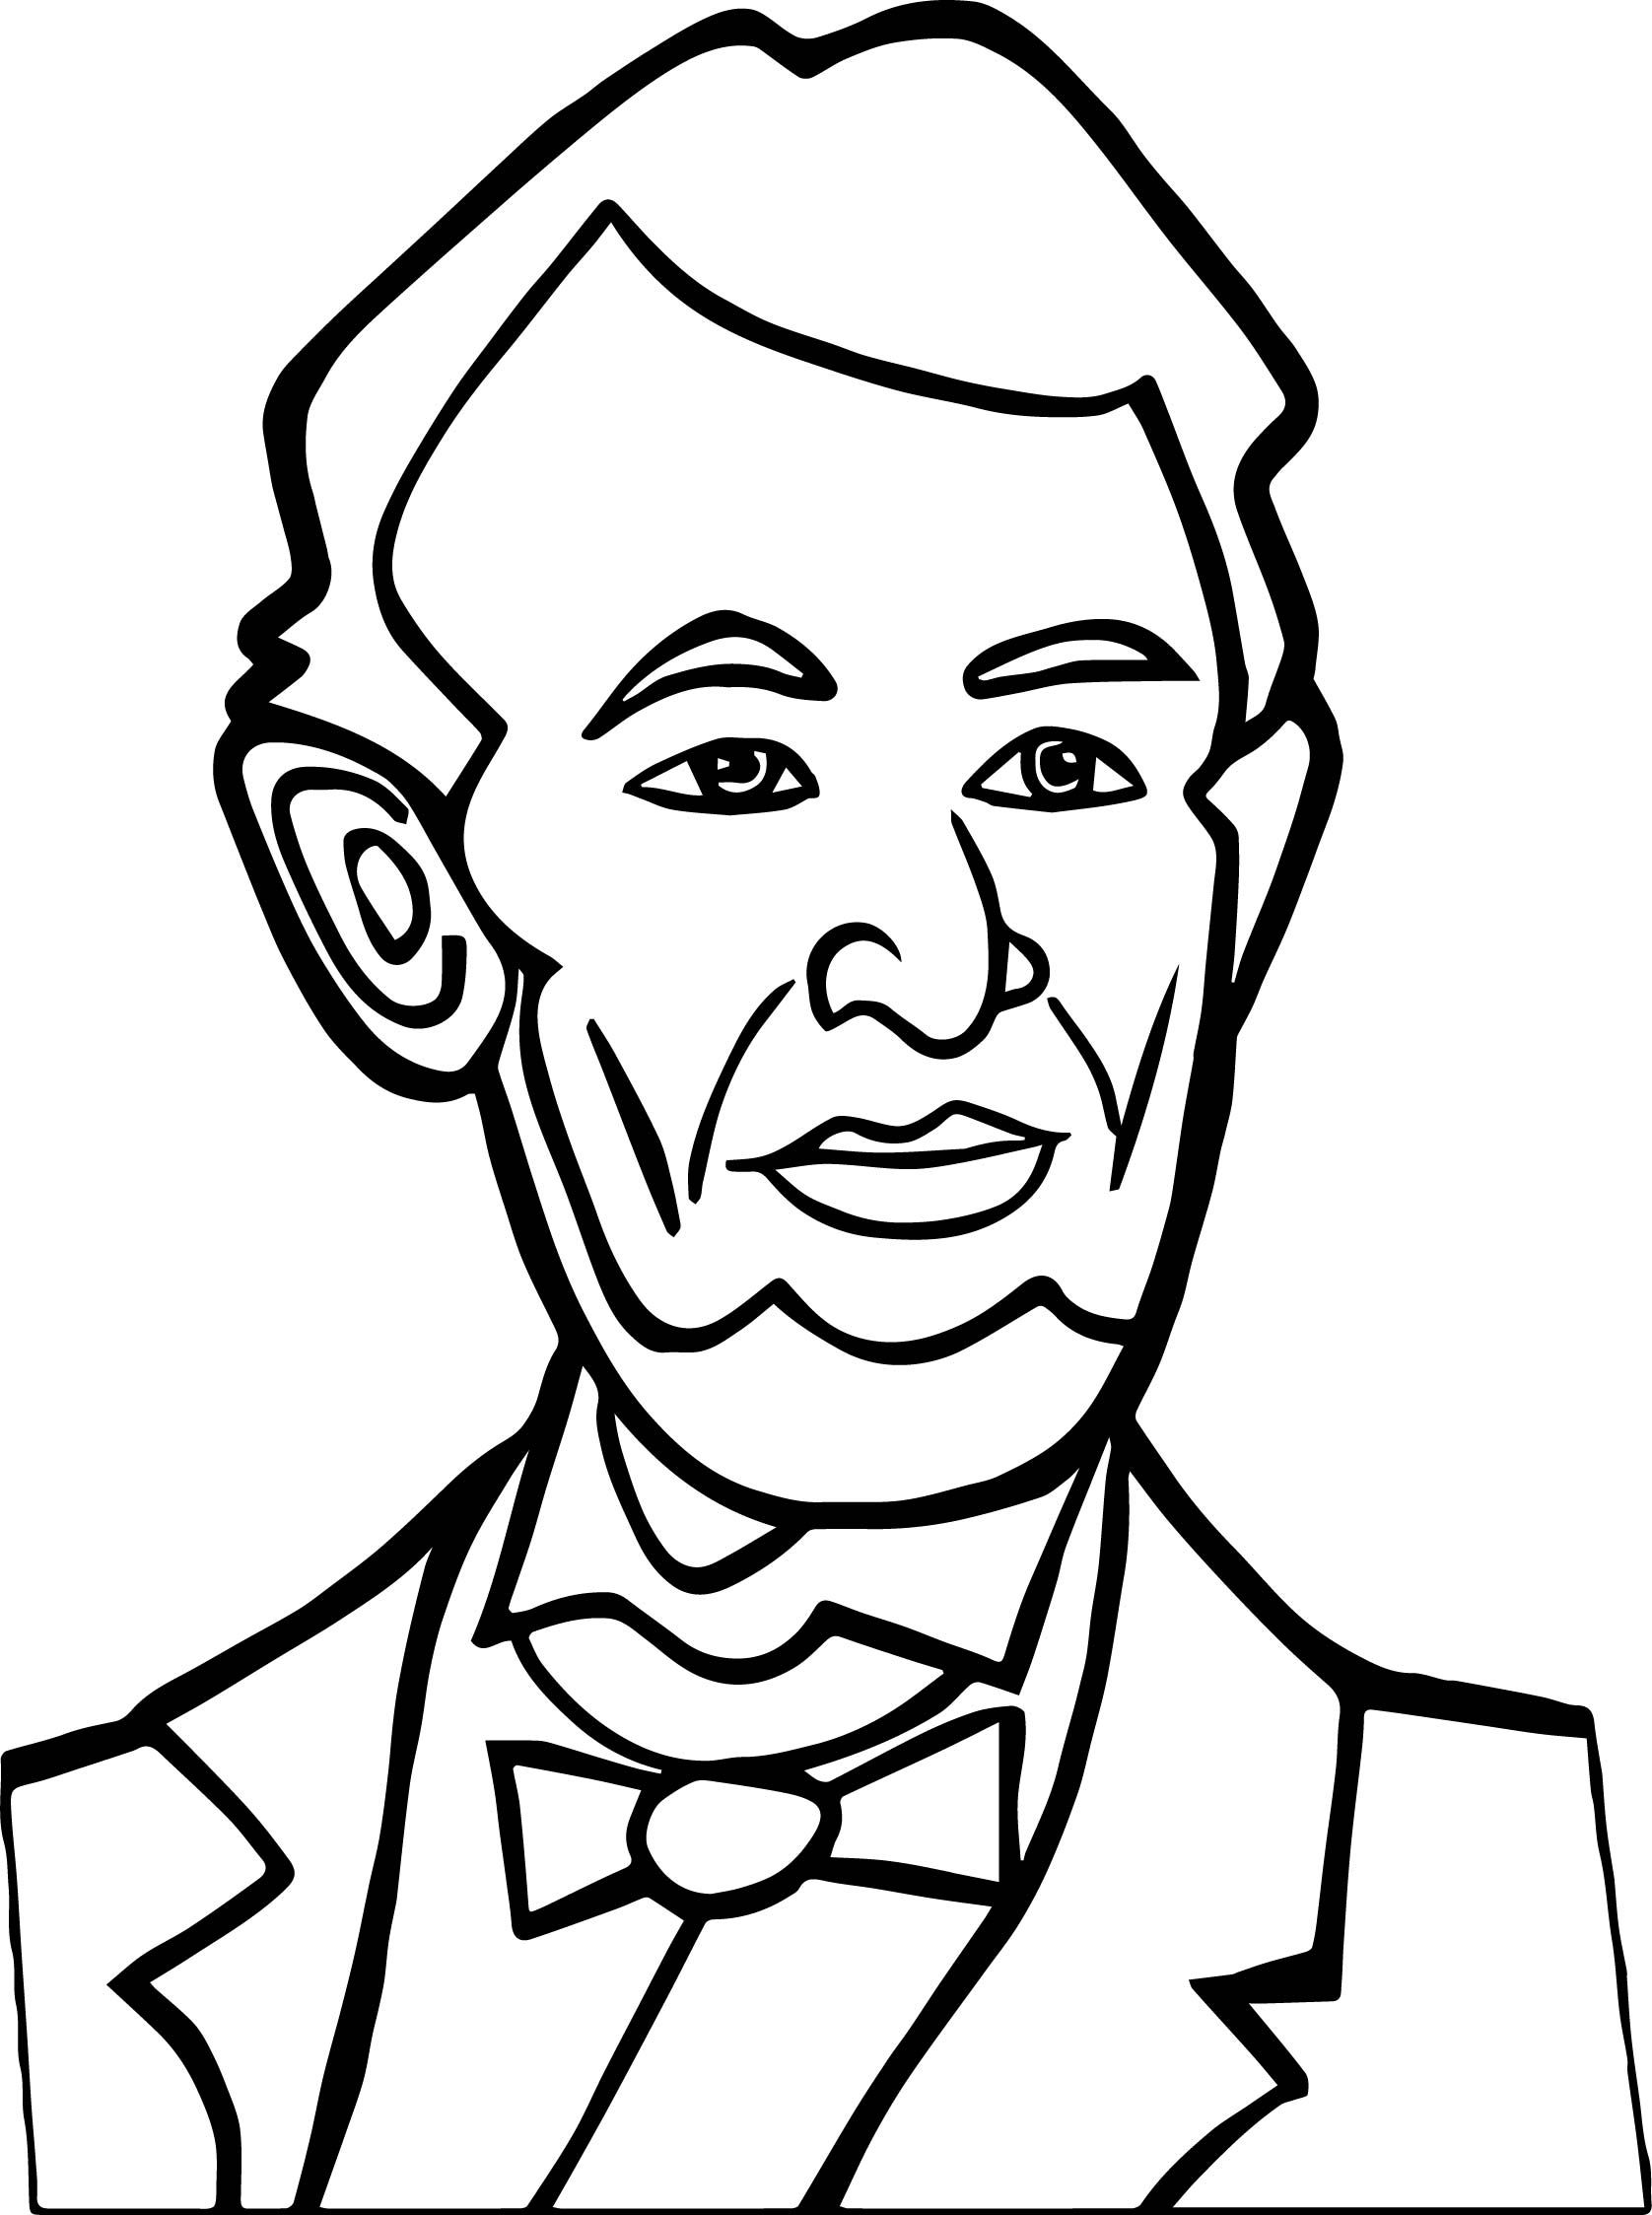 abraham lincoln coloring page us president abraham lincoln coloring page crayolacom page coloring abraham lincoln